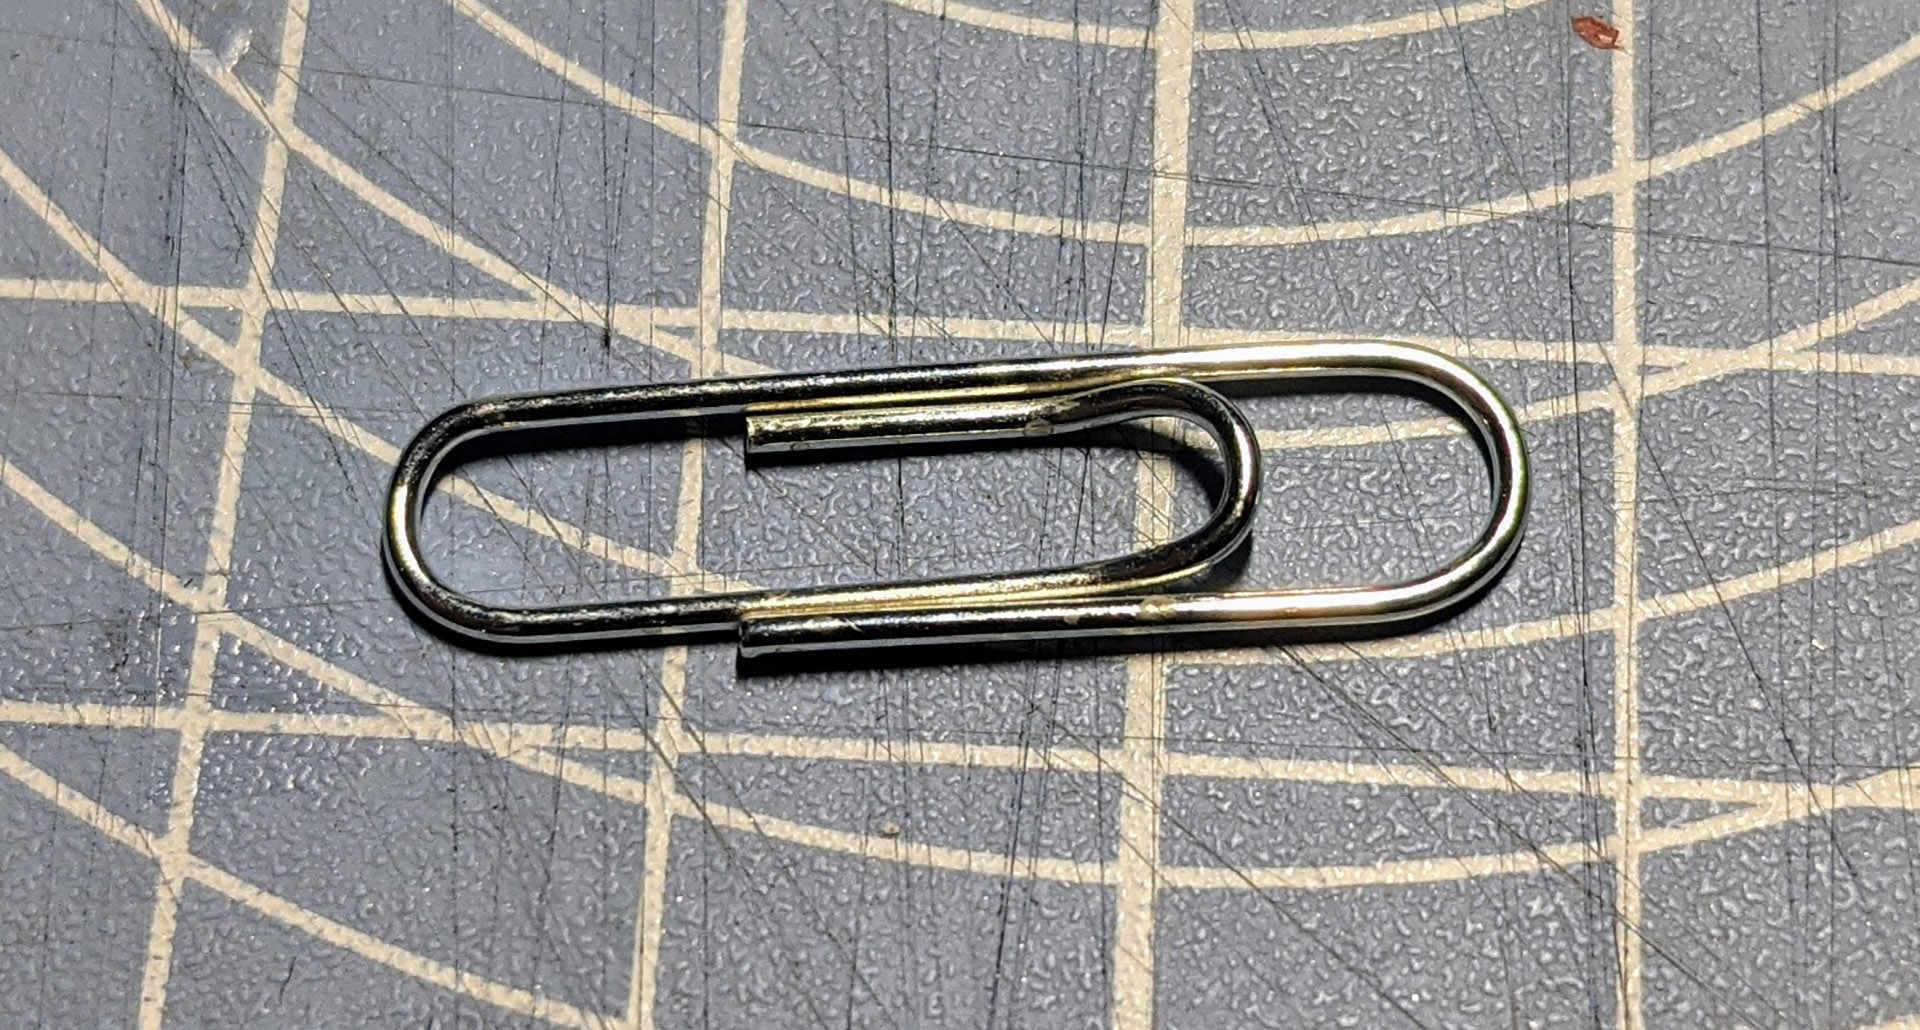 Any normal paperclip will work.